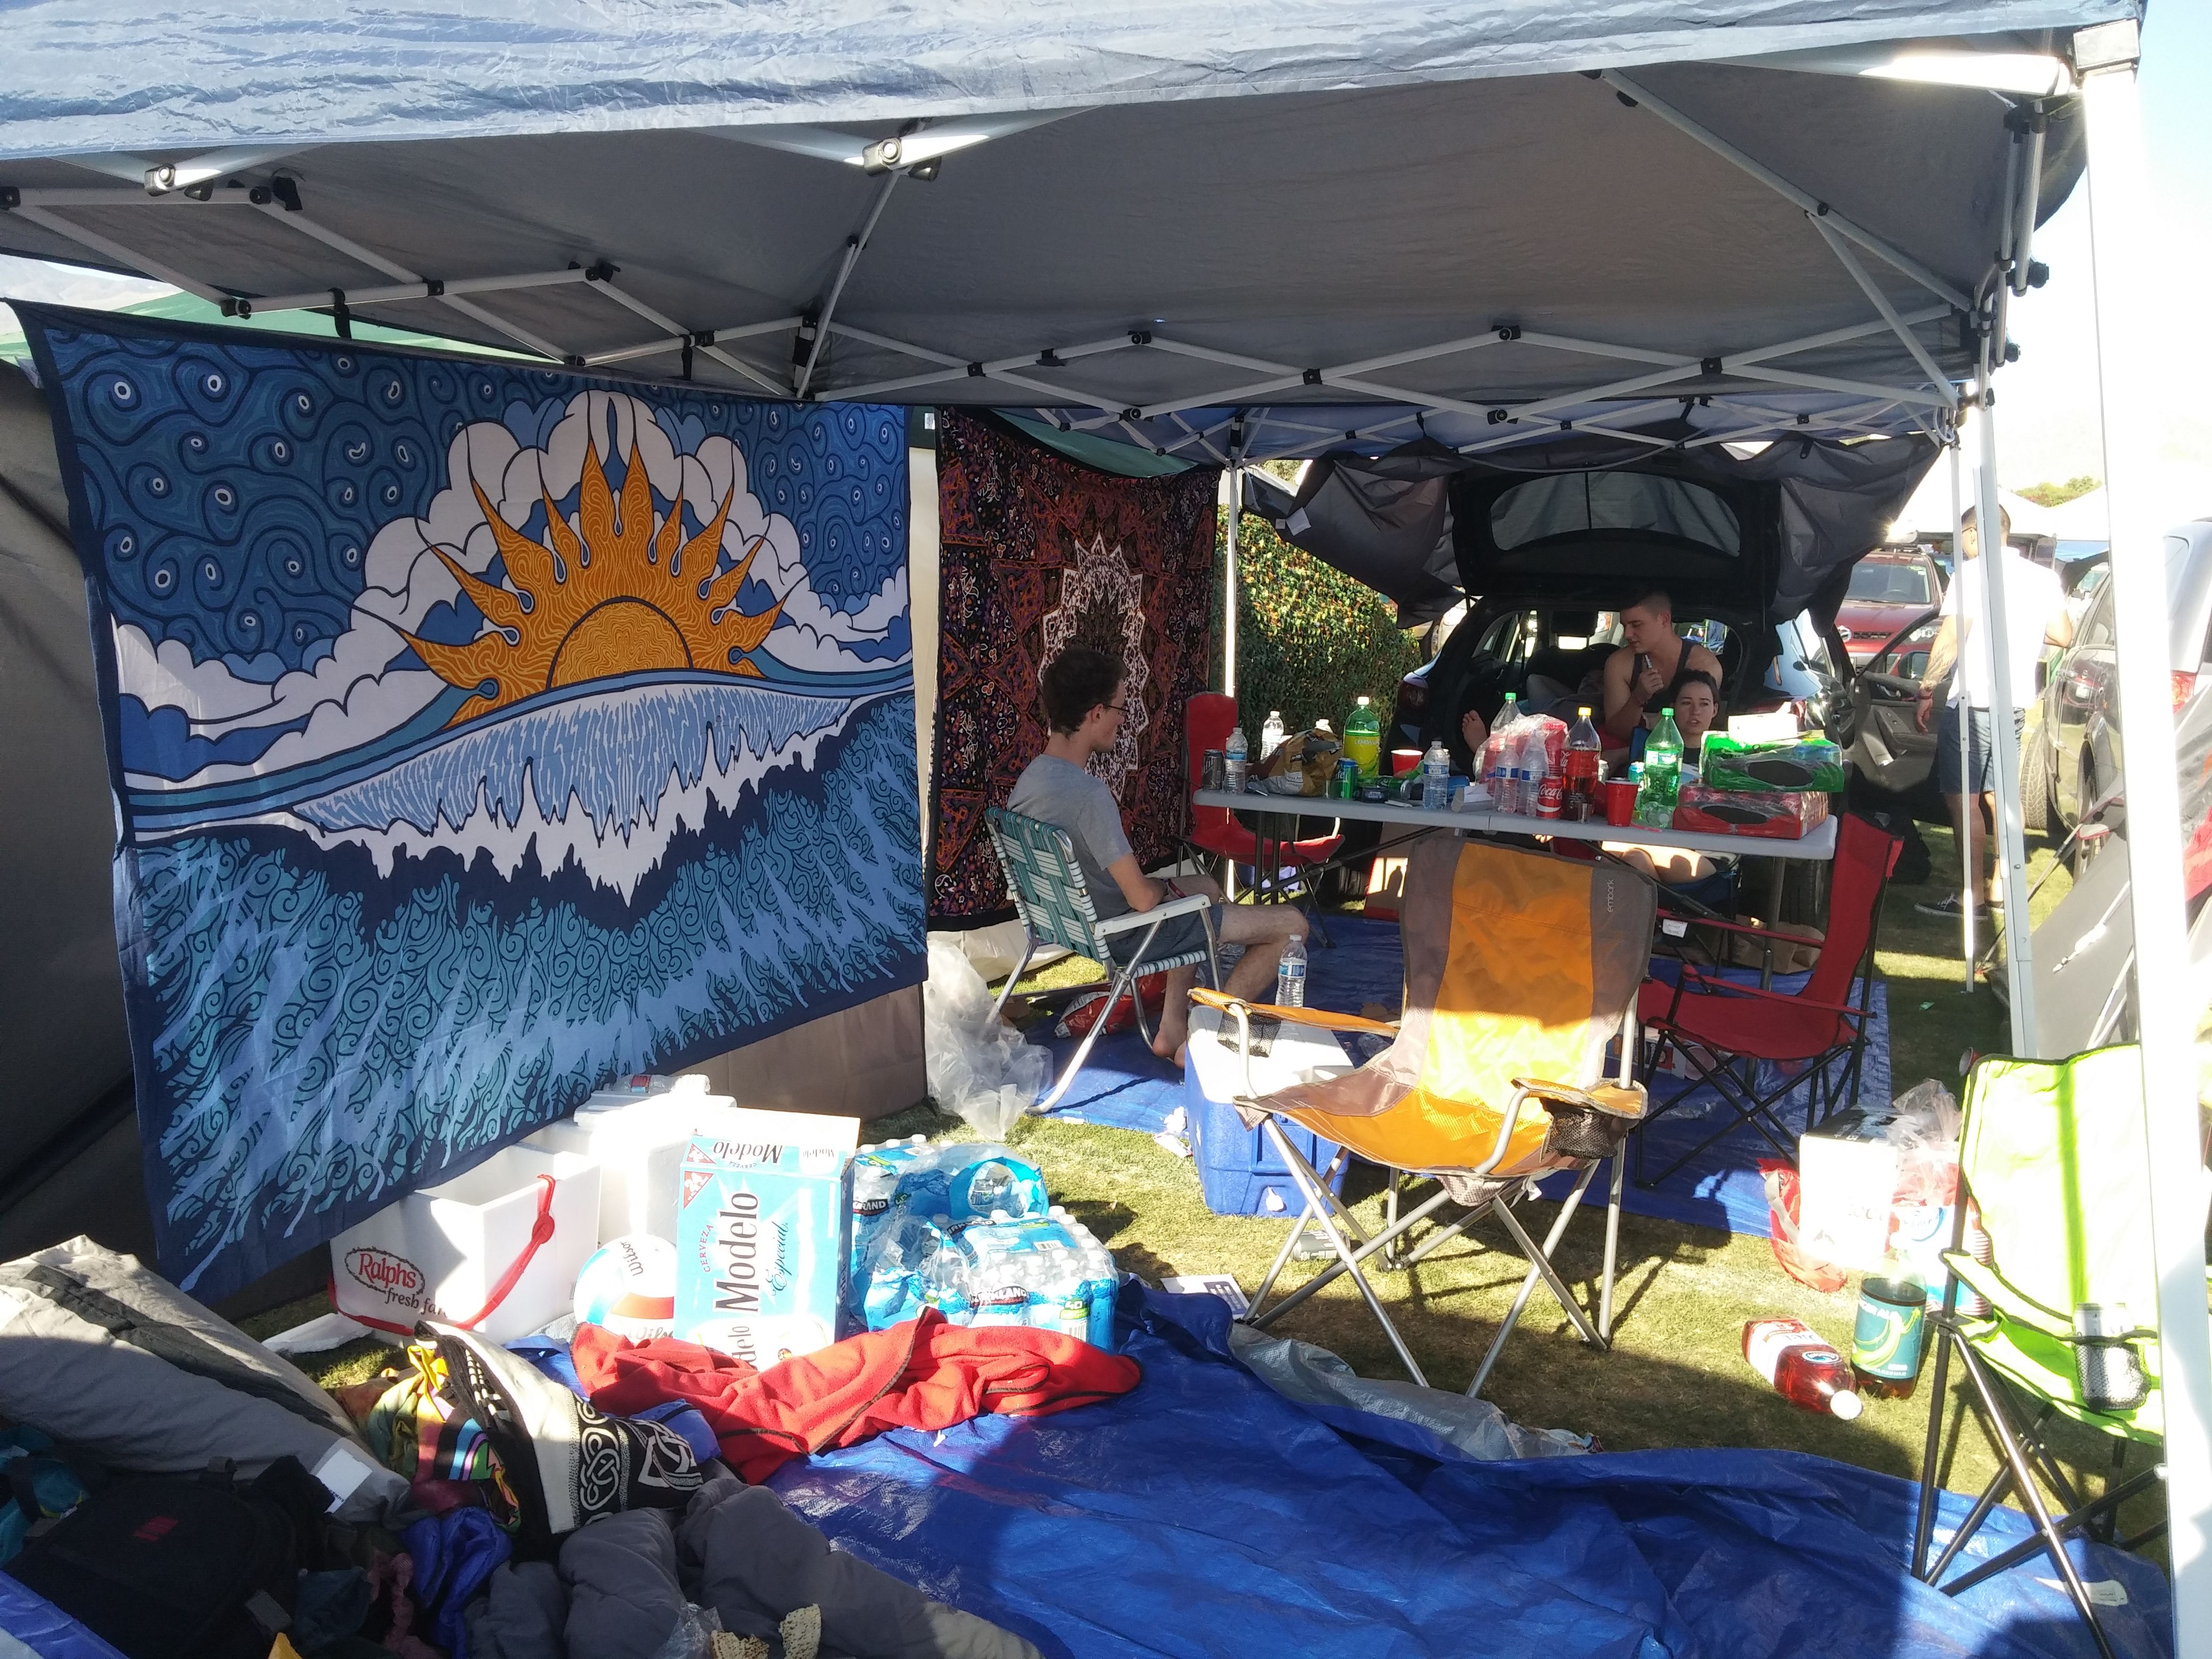 Check out our tapestries in action at a campsite at